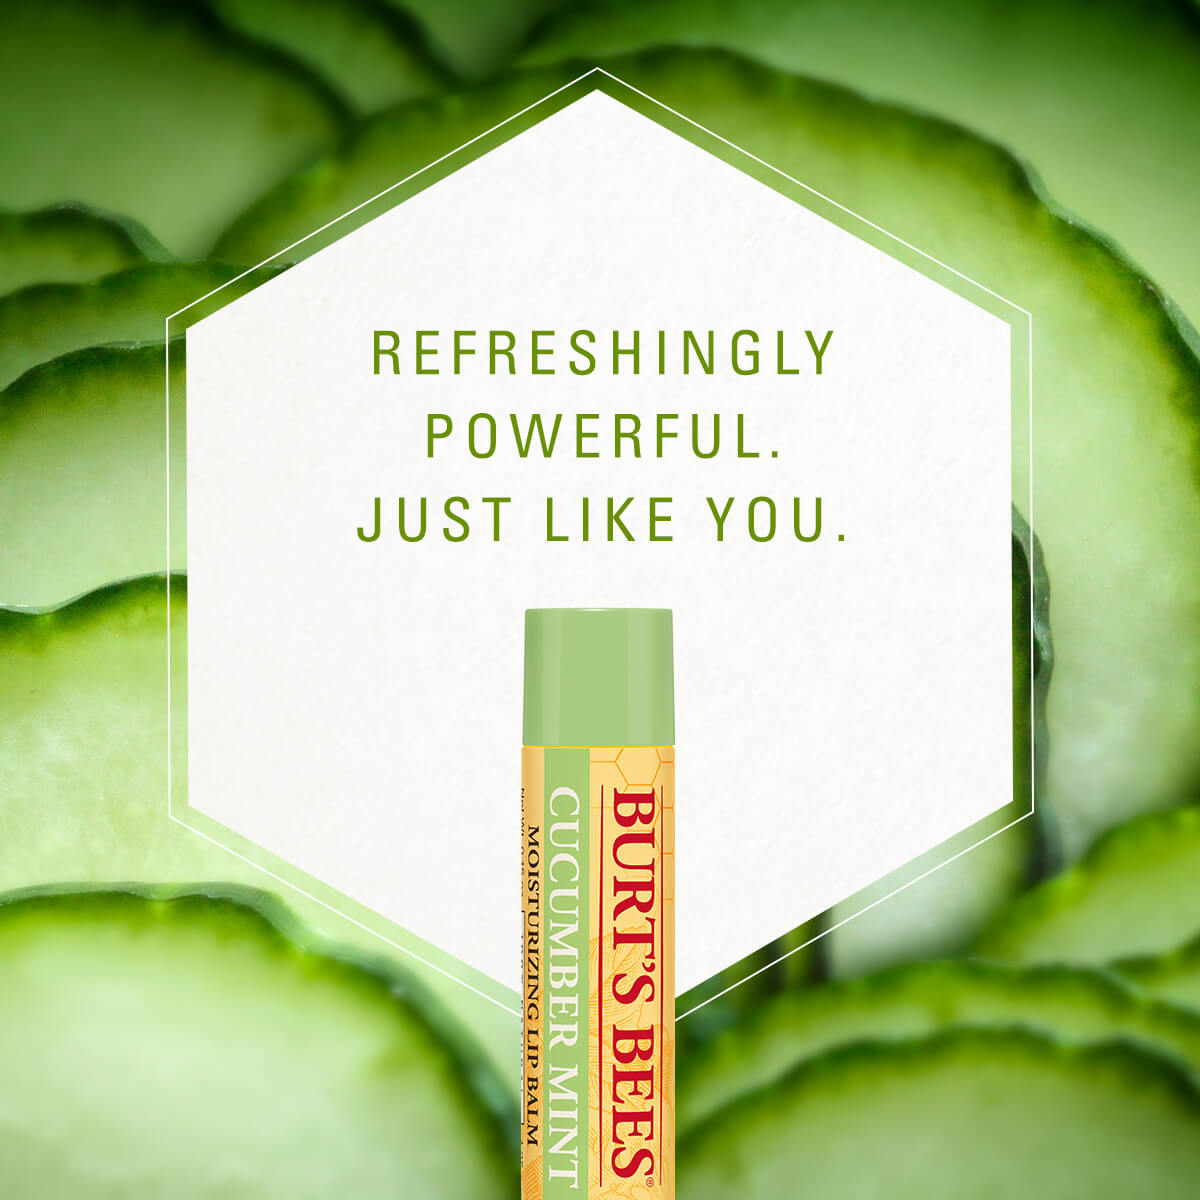 cucumber mint, refreshingly powerful. just like you